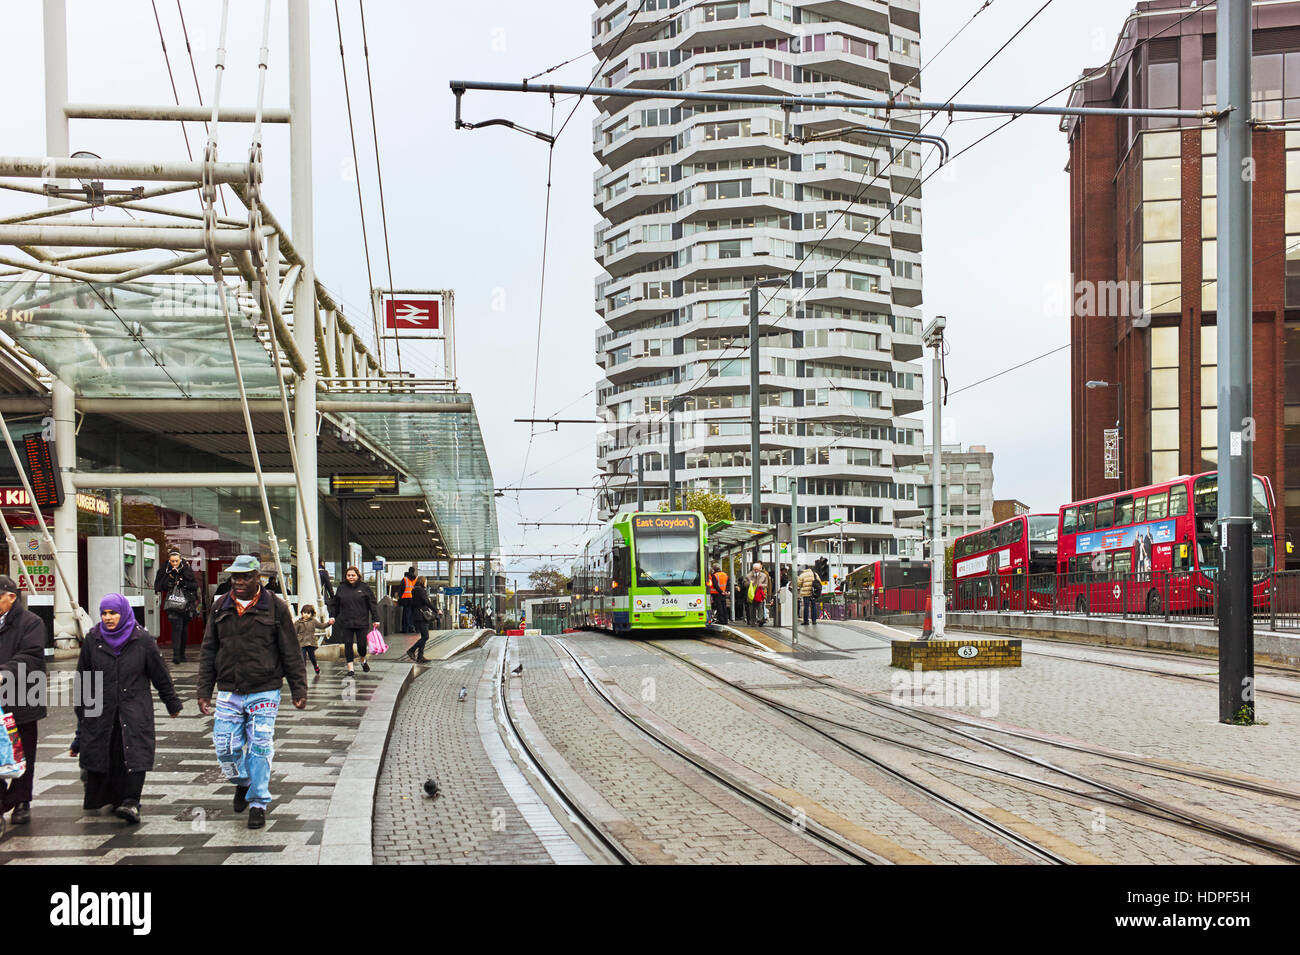 East Croydon station with tram - Stock Image